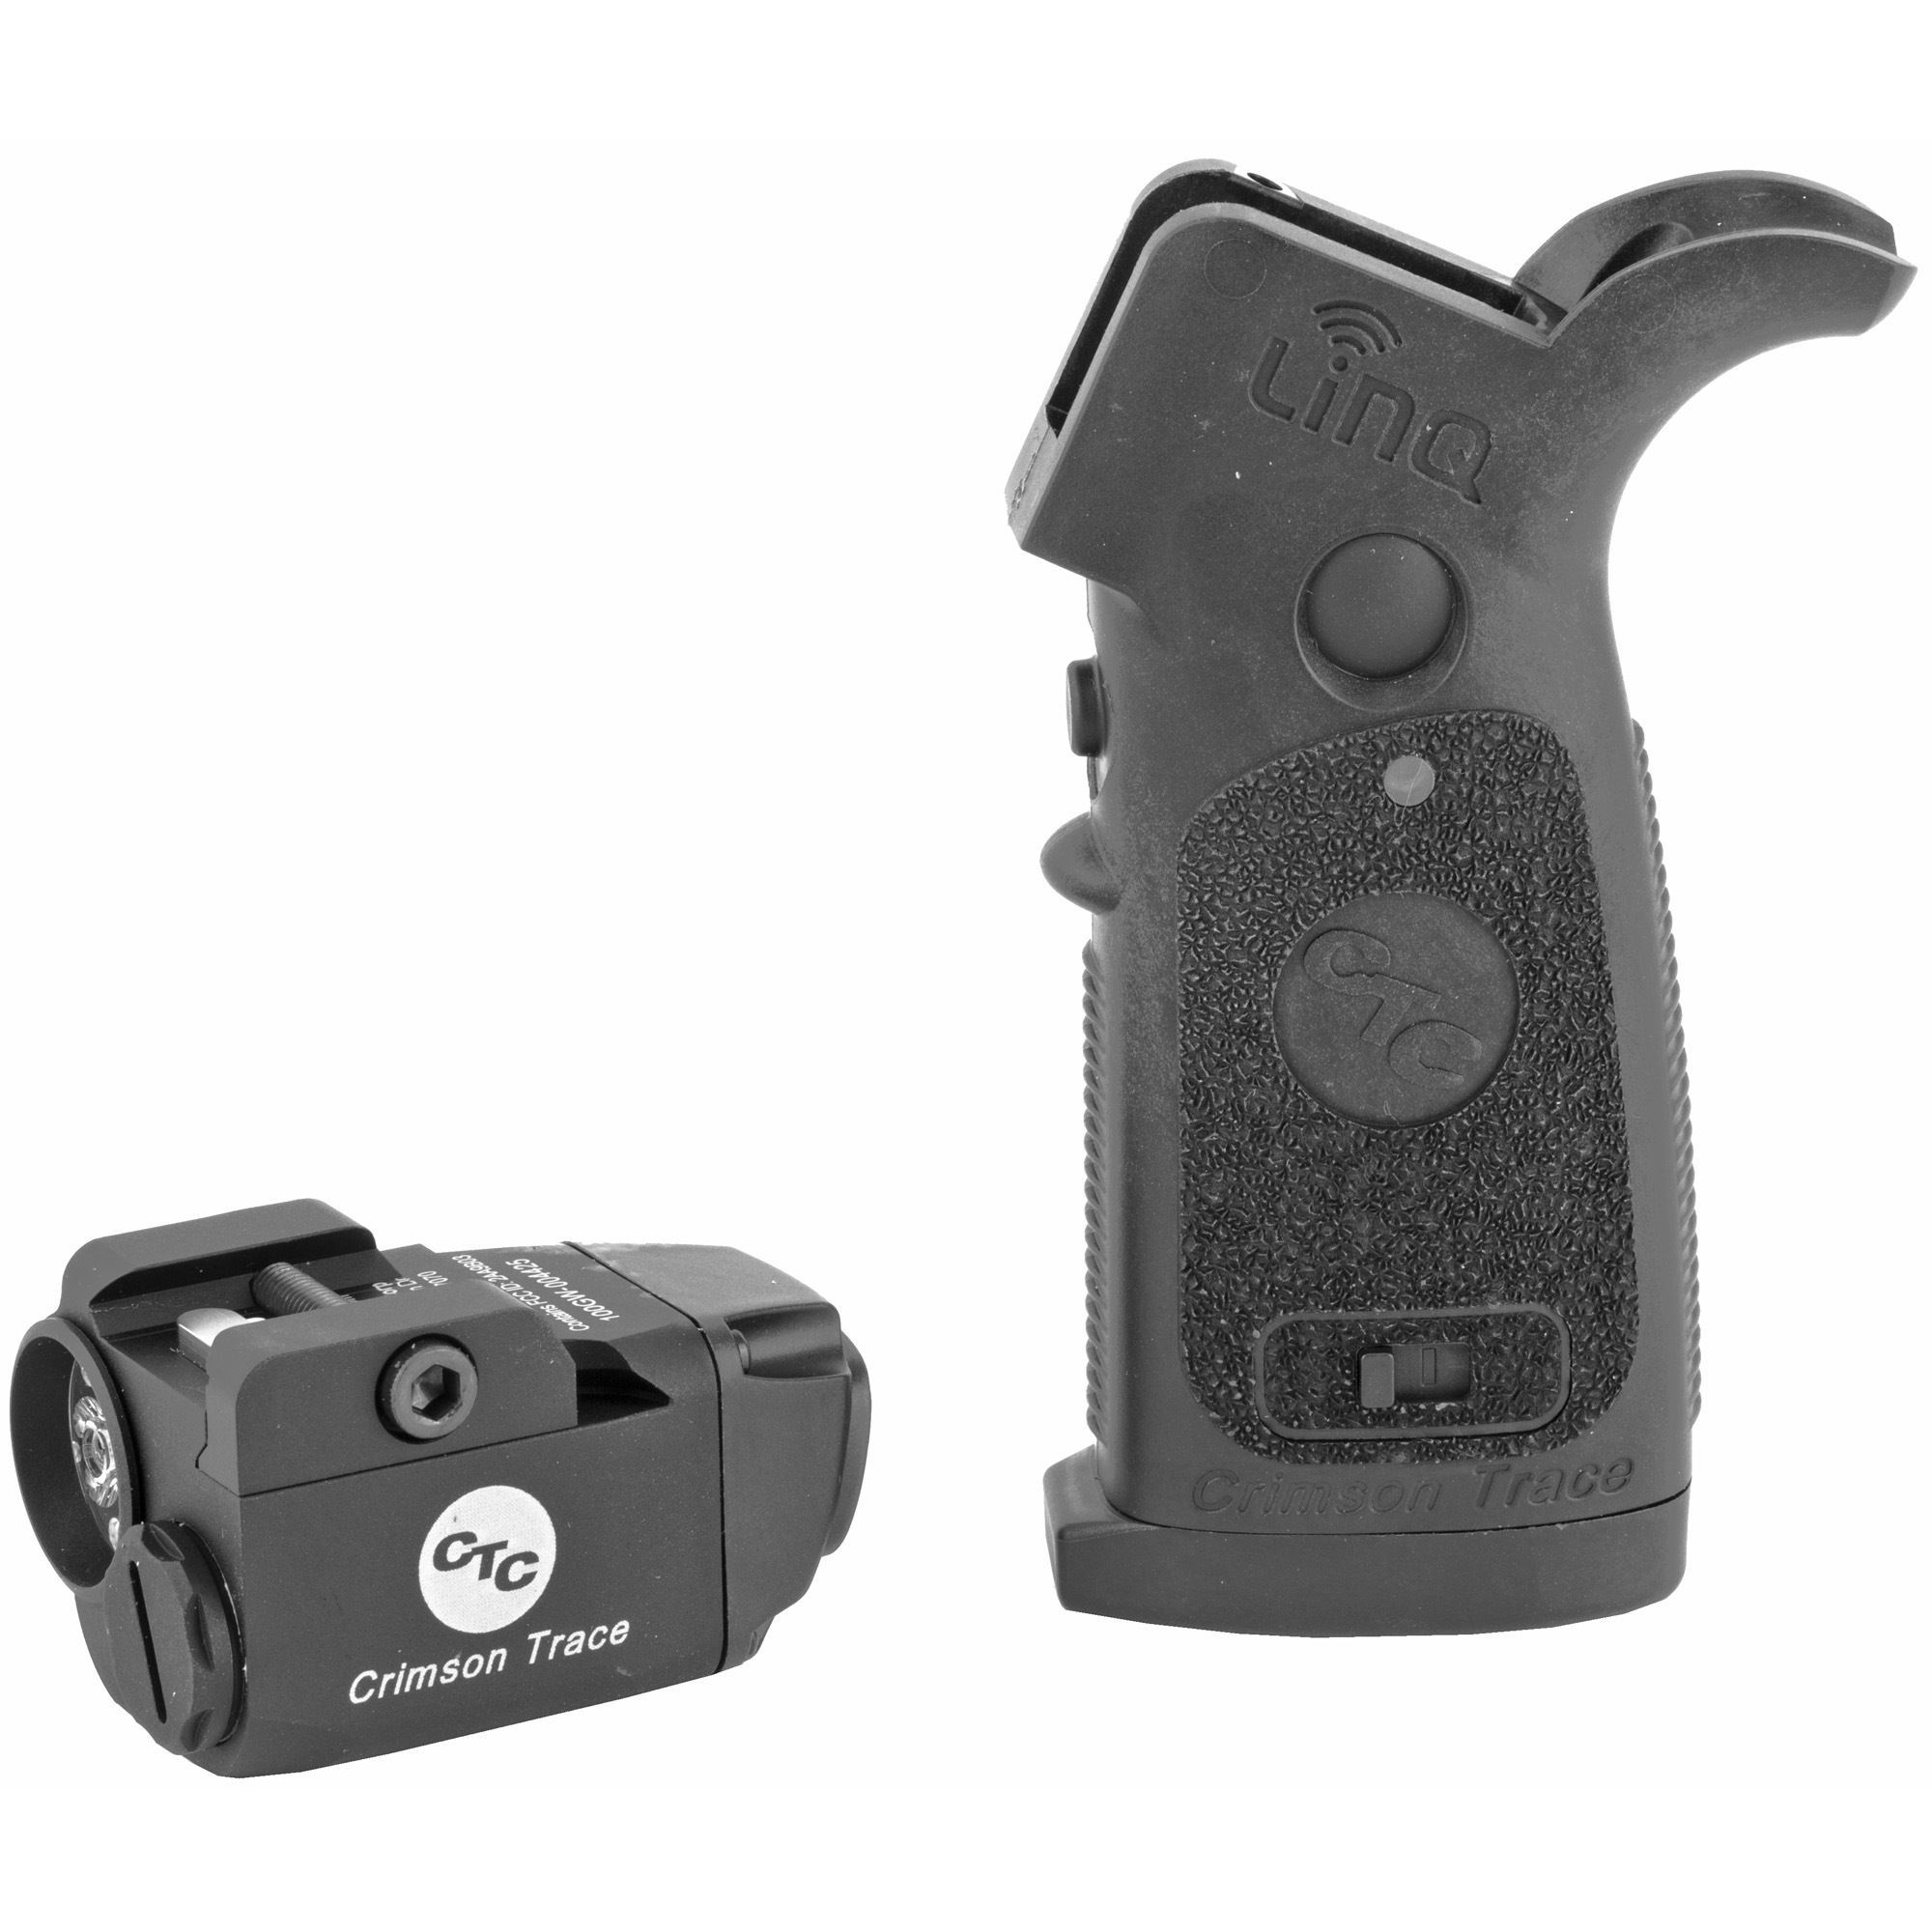 """LiNQ combines a Green Laser Sight and 300 Lumen LED White Light with Instinctive Activation(TM) for AR-Type Modern Sporting Rifles (AR-15"""" AR-10"""" M4"""" M16"""" HK416). Utilizing a secure"""" individual wireless connection"""" LiNQ offers complete wireless control of the laser and light module. The replacement grip is ergonomically designed for quick activation and mode changes"""" eliminating the need to reach for the rifle's forend to operate. The green laser sight"""" coupled with a powerful tactical light"""" offers high visibility in all lighting conditions"""" making LiNQ the ultimate illumination and targeting solution."""